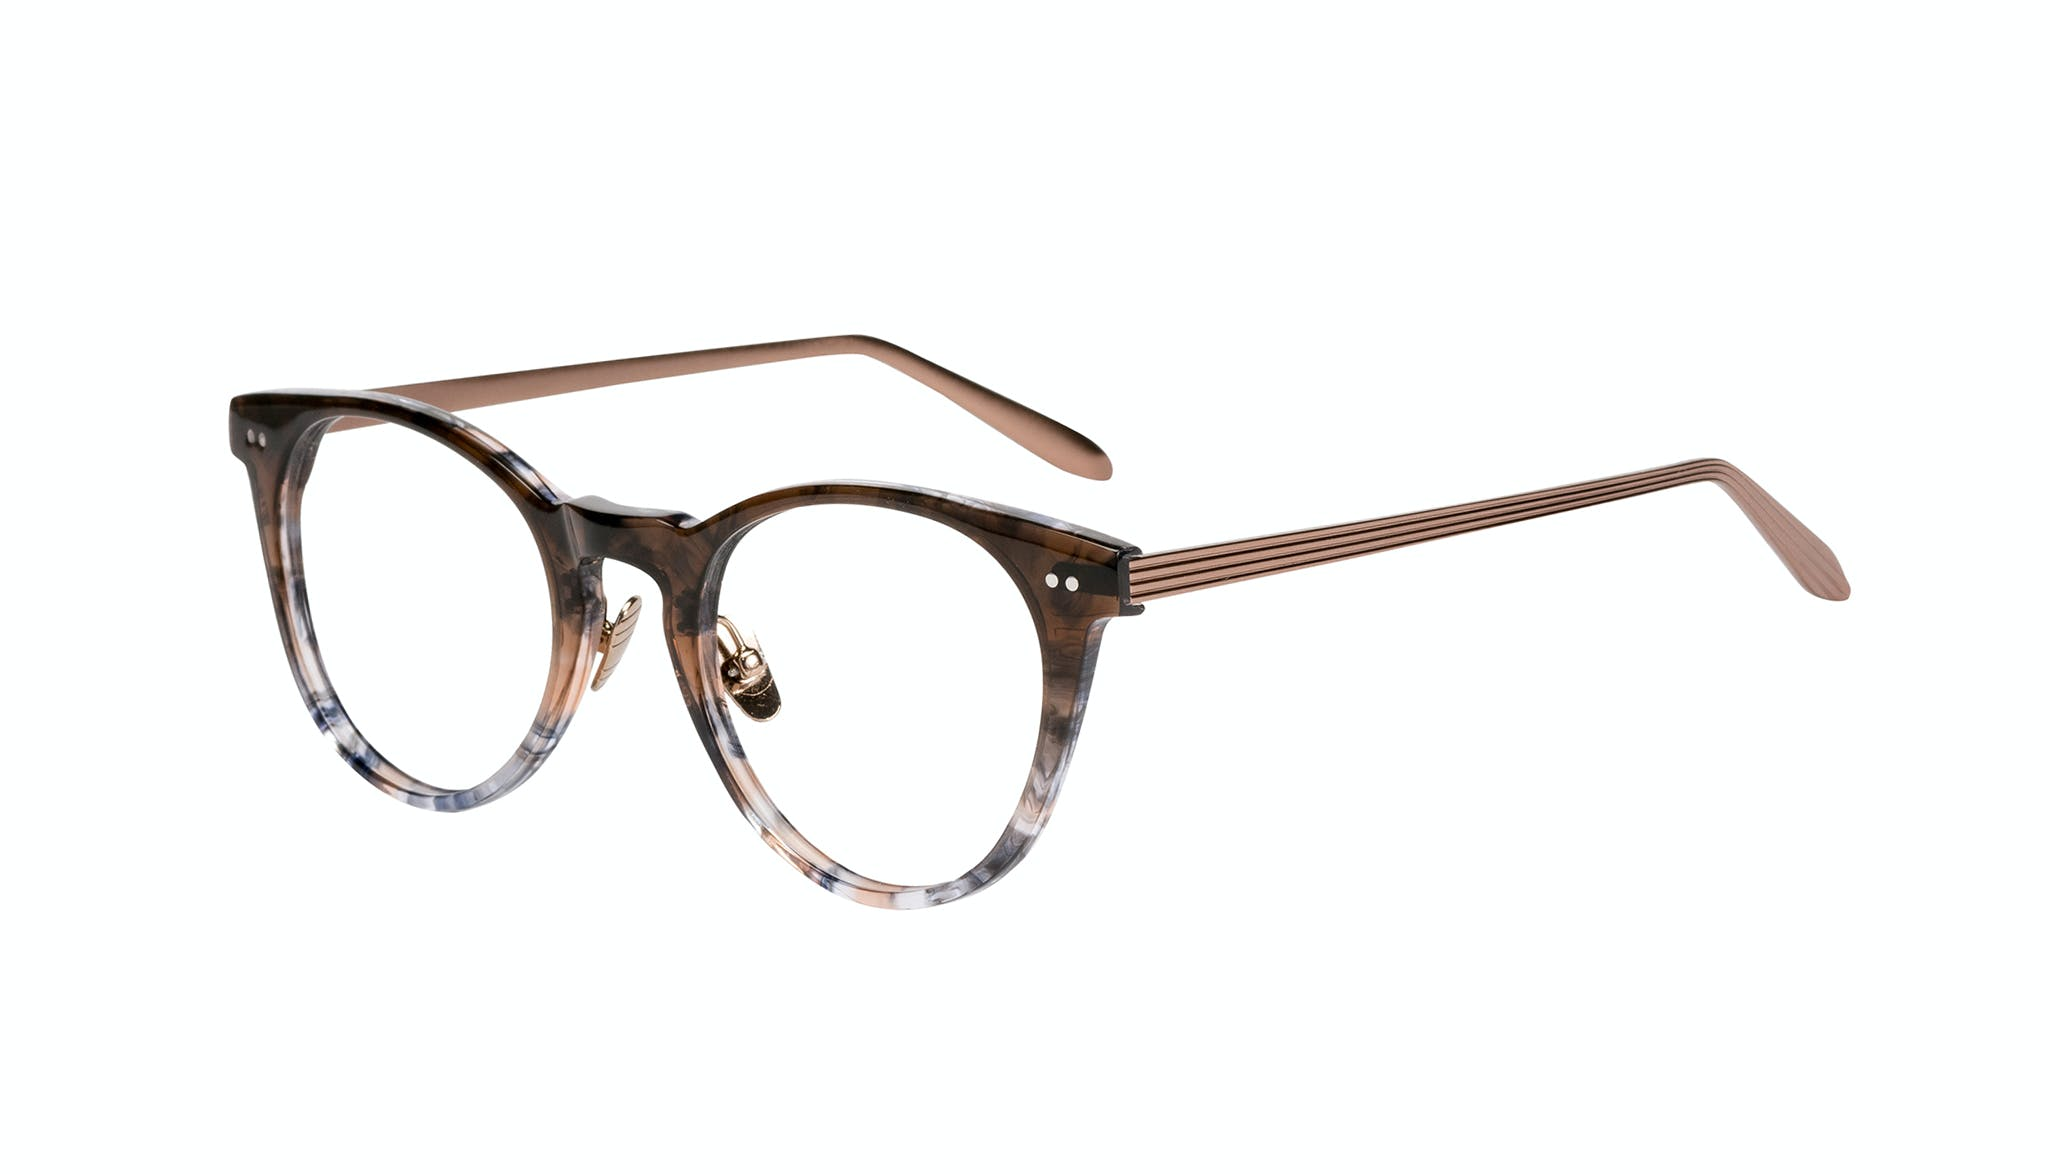 Affordable Fashion Glasses Round Eyeglasses Women Luv Moon Dust Tilt